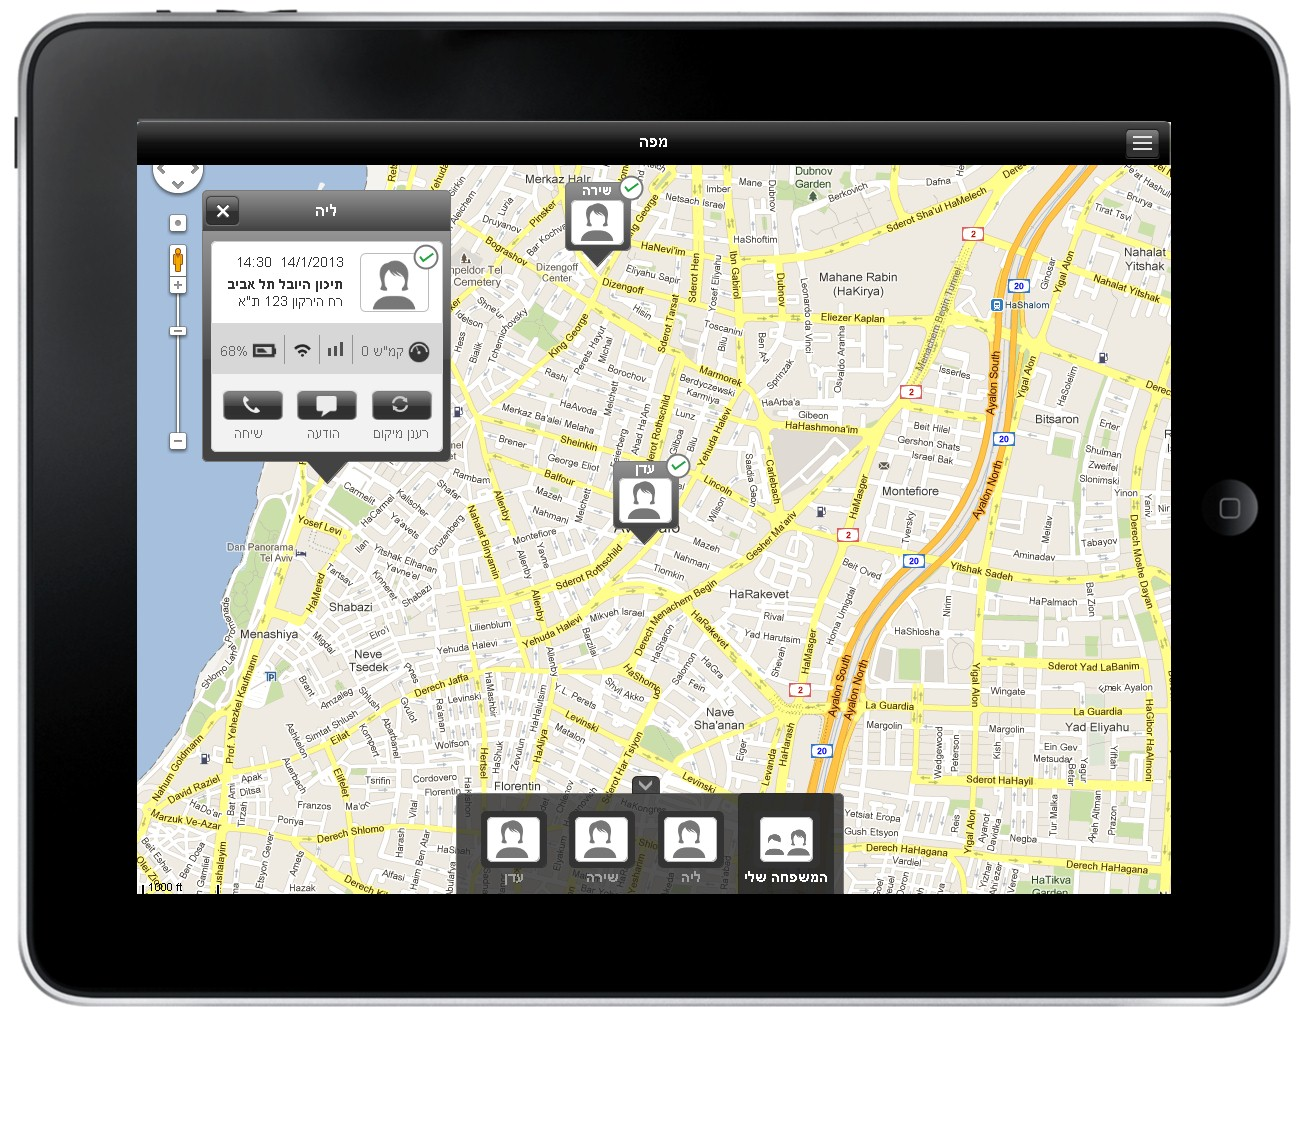 Noa goldfarb ux ui design for mobile apps desktop for Home architecture apps for ipad